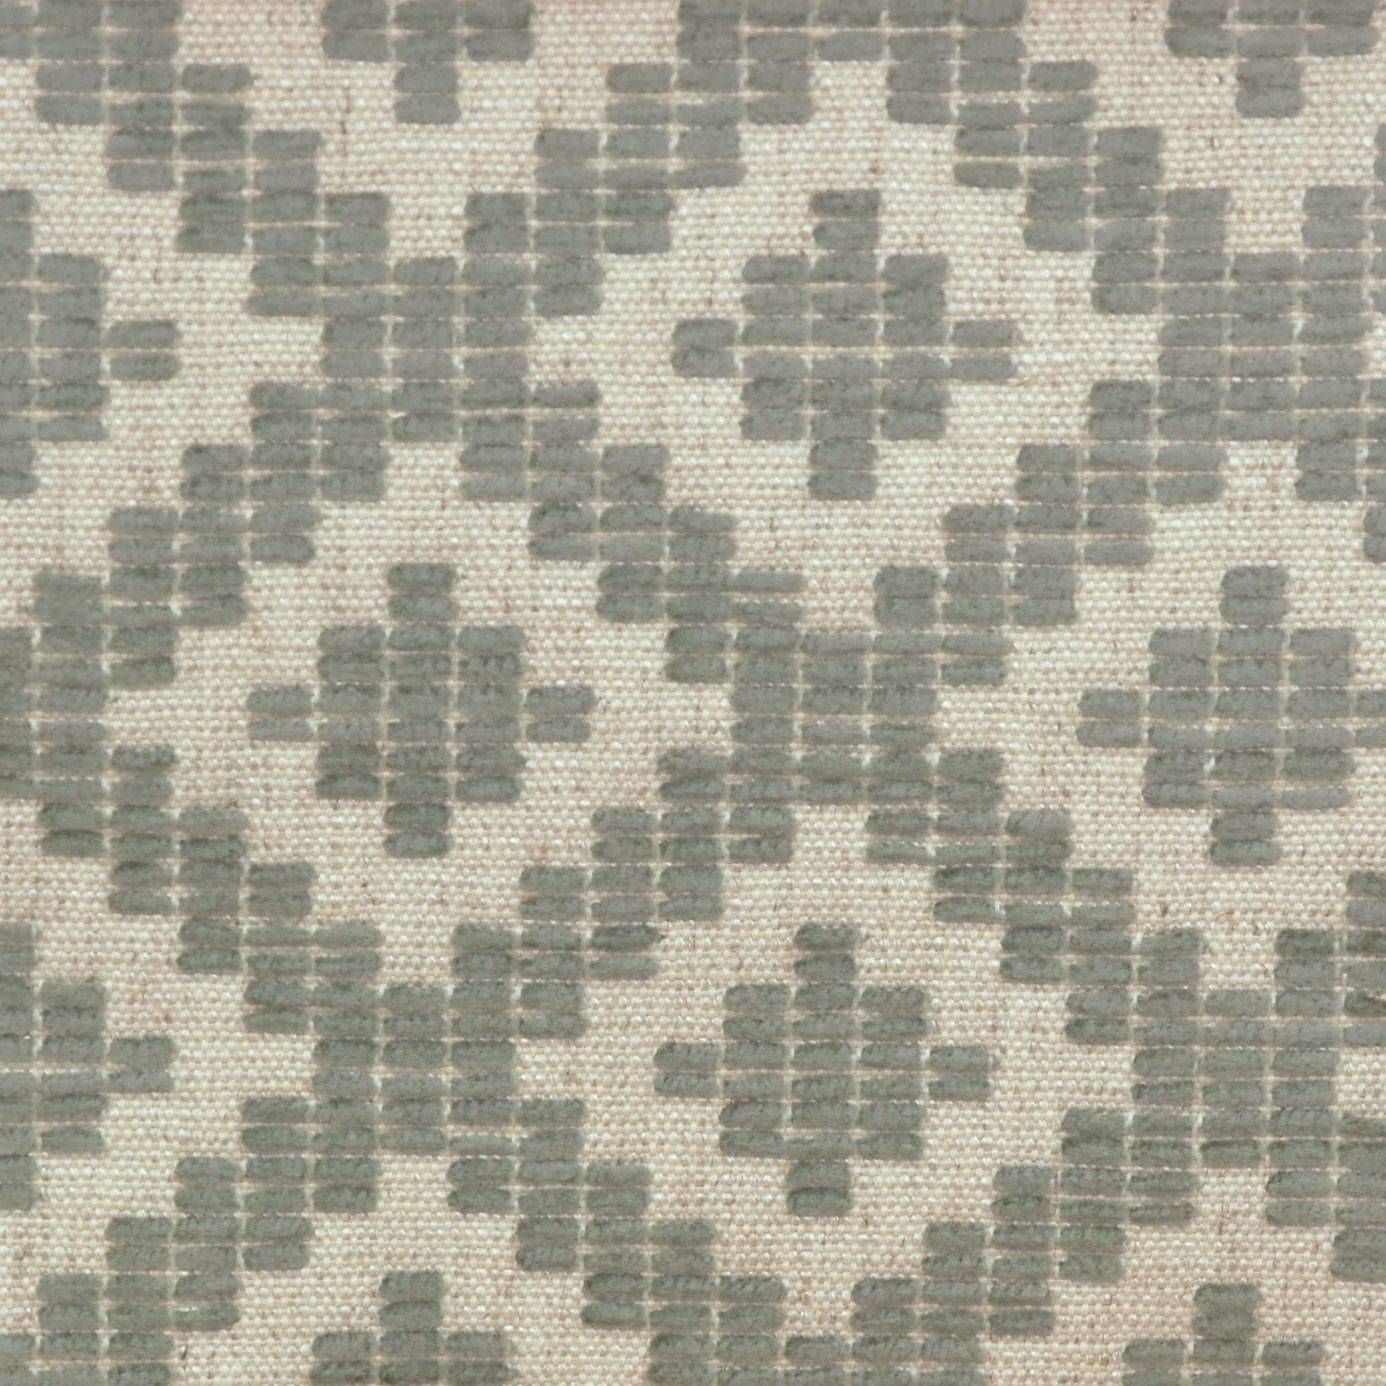 Addison Fabric Mist (ADDISONMIST) Warwick Wolseley